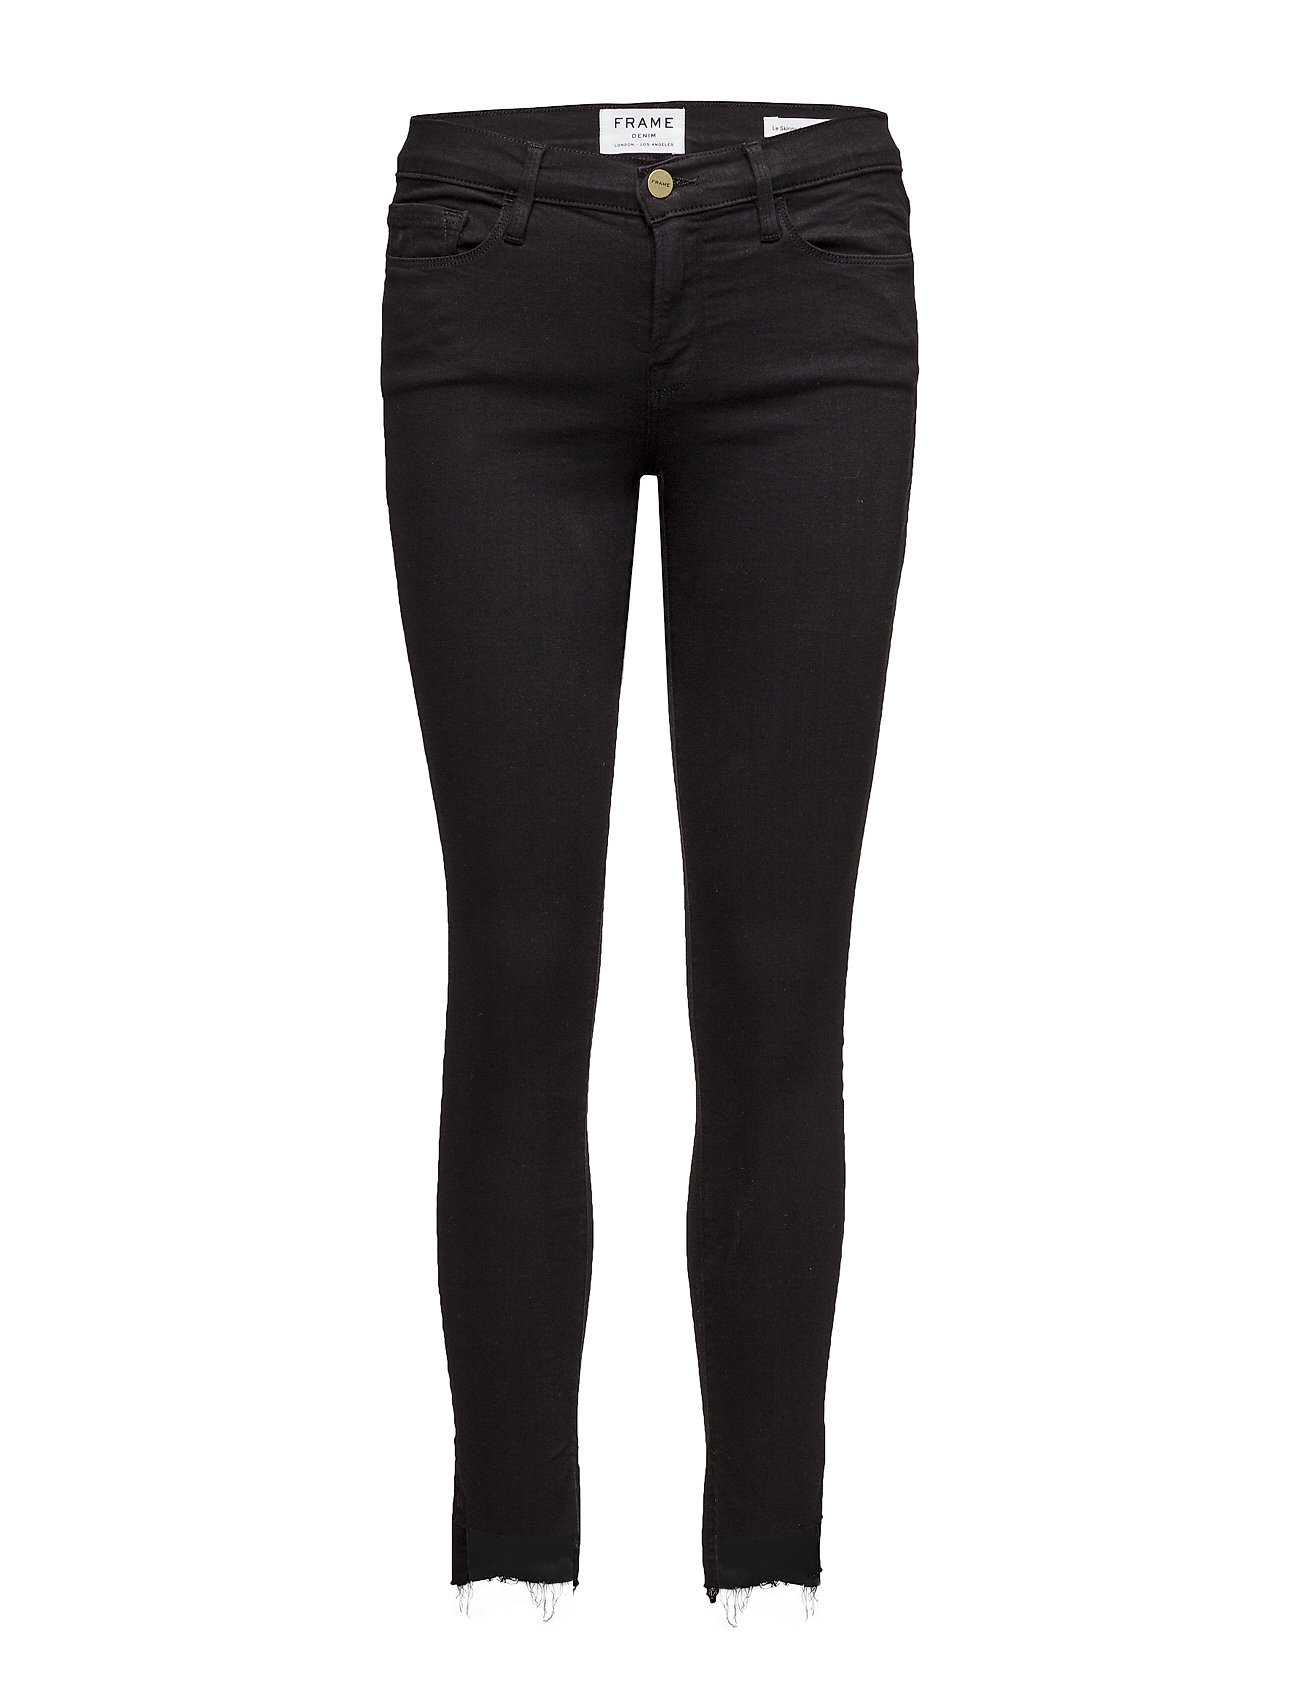 FRAME LE SKINNY DE JEANNE RW STAGGER Jeans